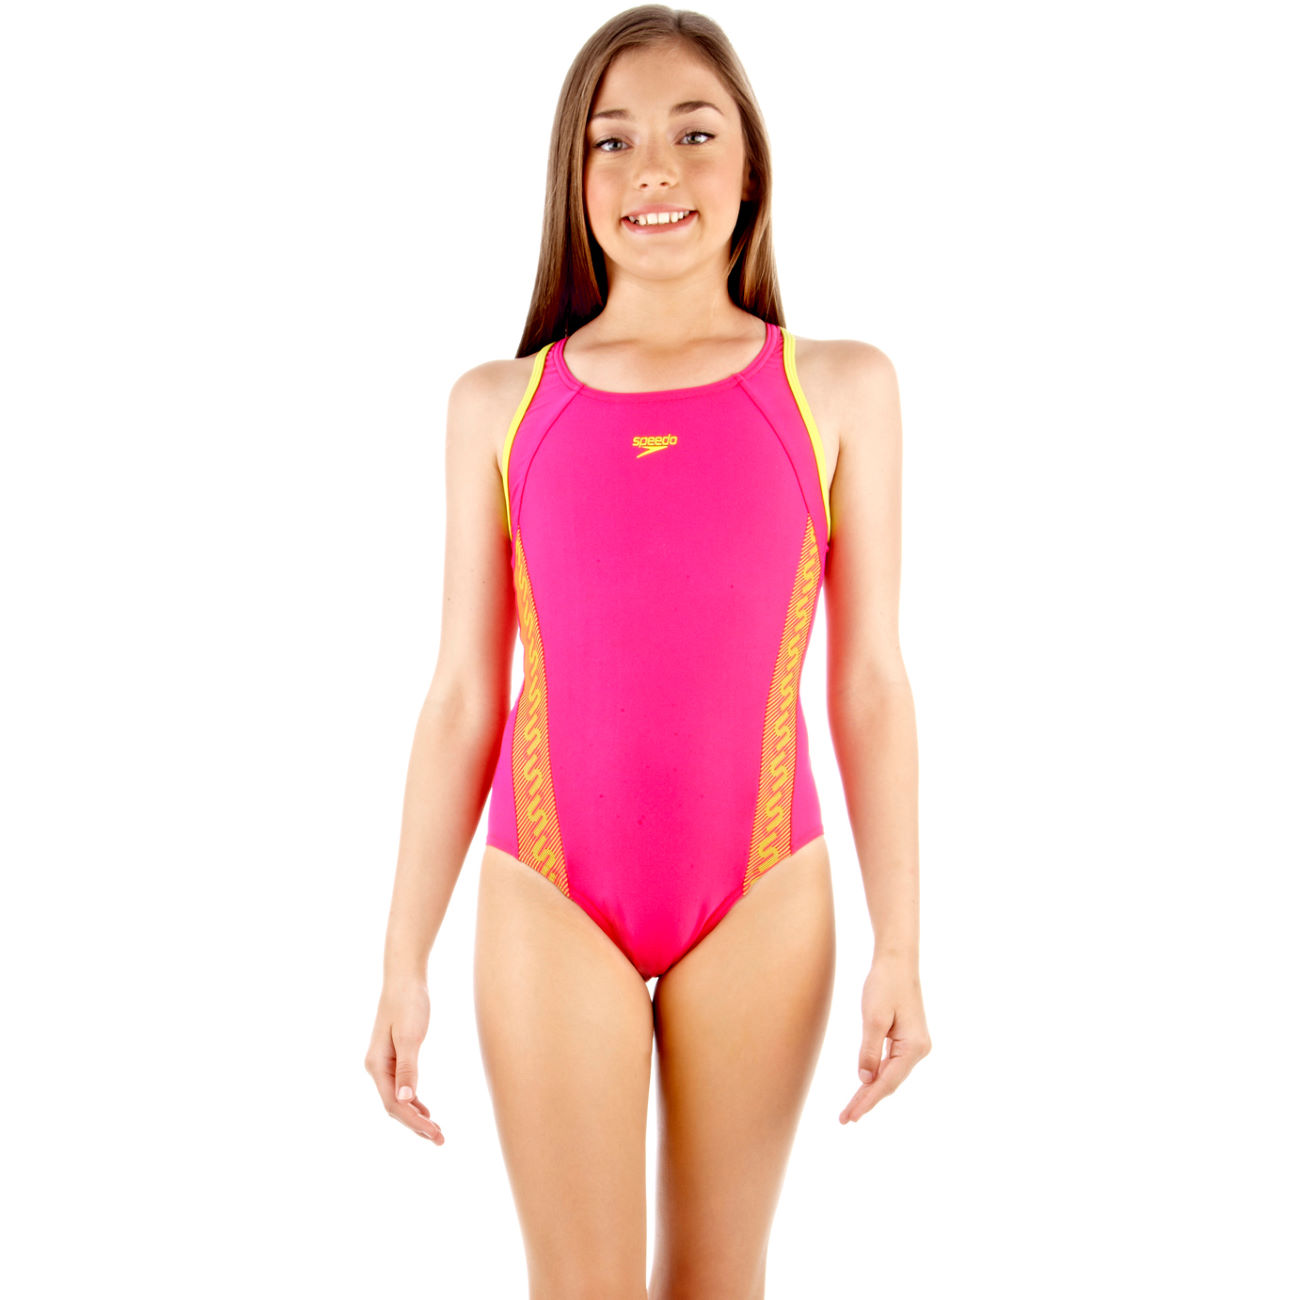 High quality swimwear for kids Each of our children's swimsuits have been made with high quality fabrics designed to cope with regular pool visits. Elastomax™ and Hydrolife™ materials feature XtraLife elastane, while our Durafeel™ fabric will last for up to hours of pool swimming.